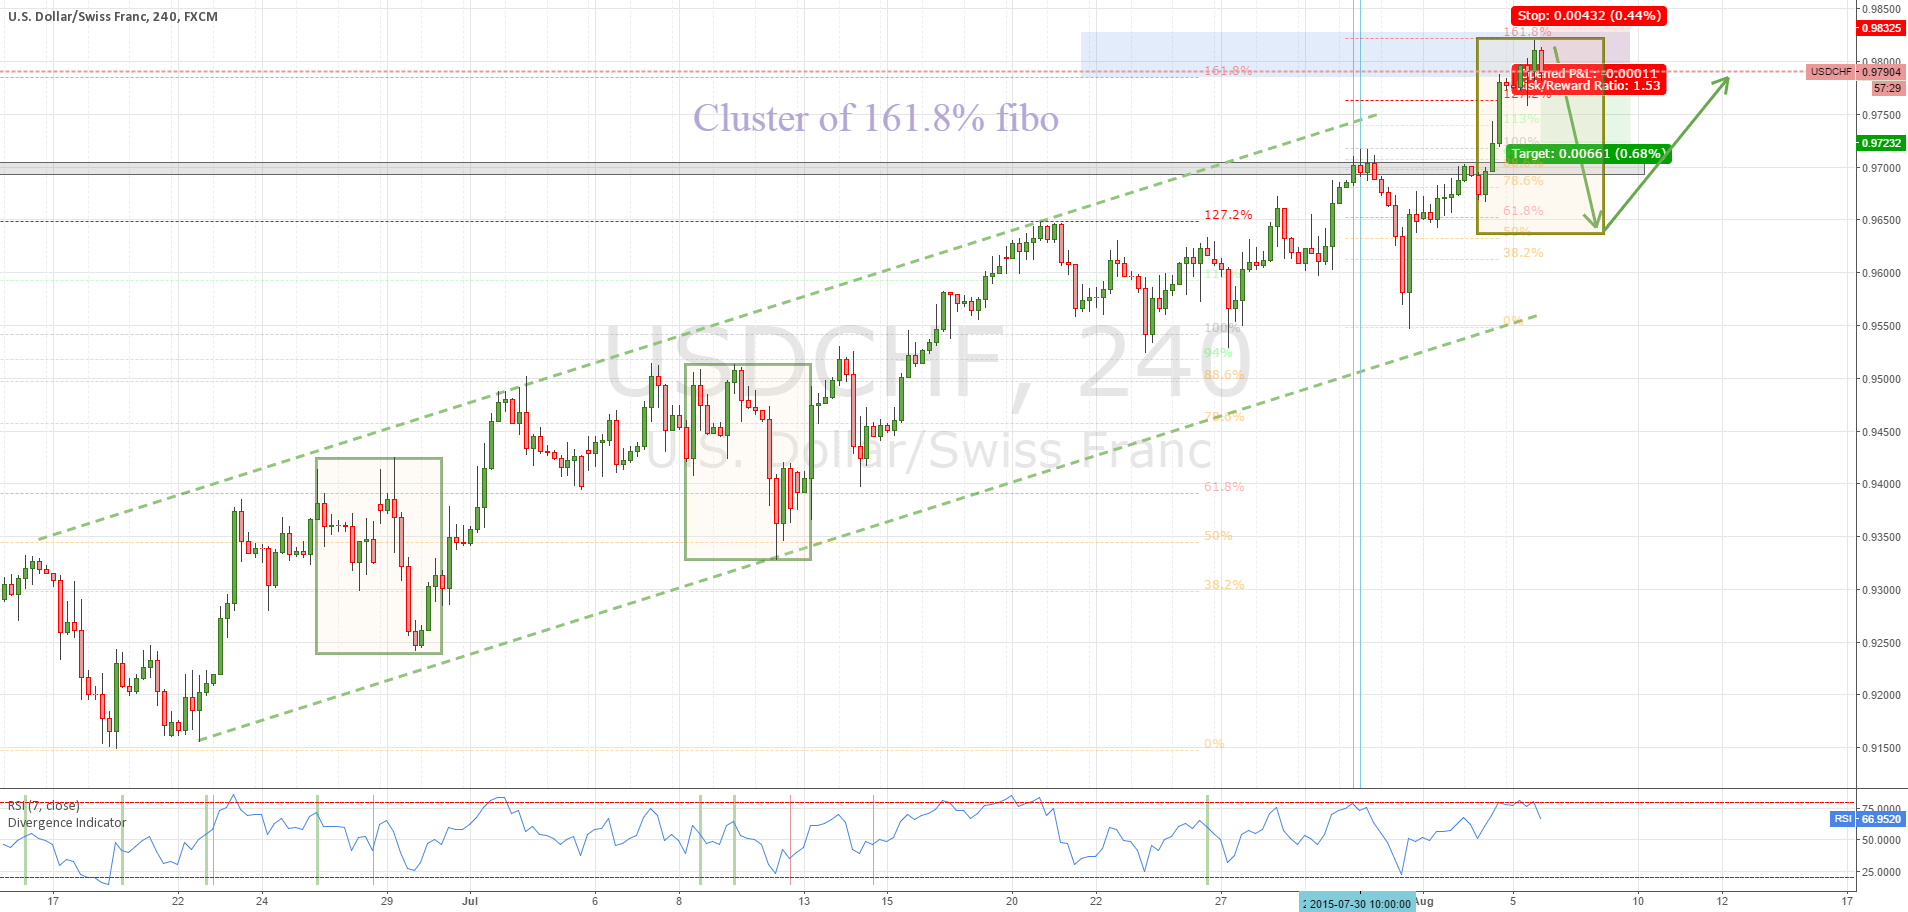 USDCHF H4 - Cluster of fibo 2x 161.8% for (short) shorts